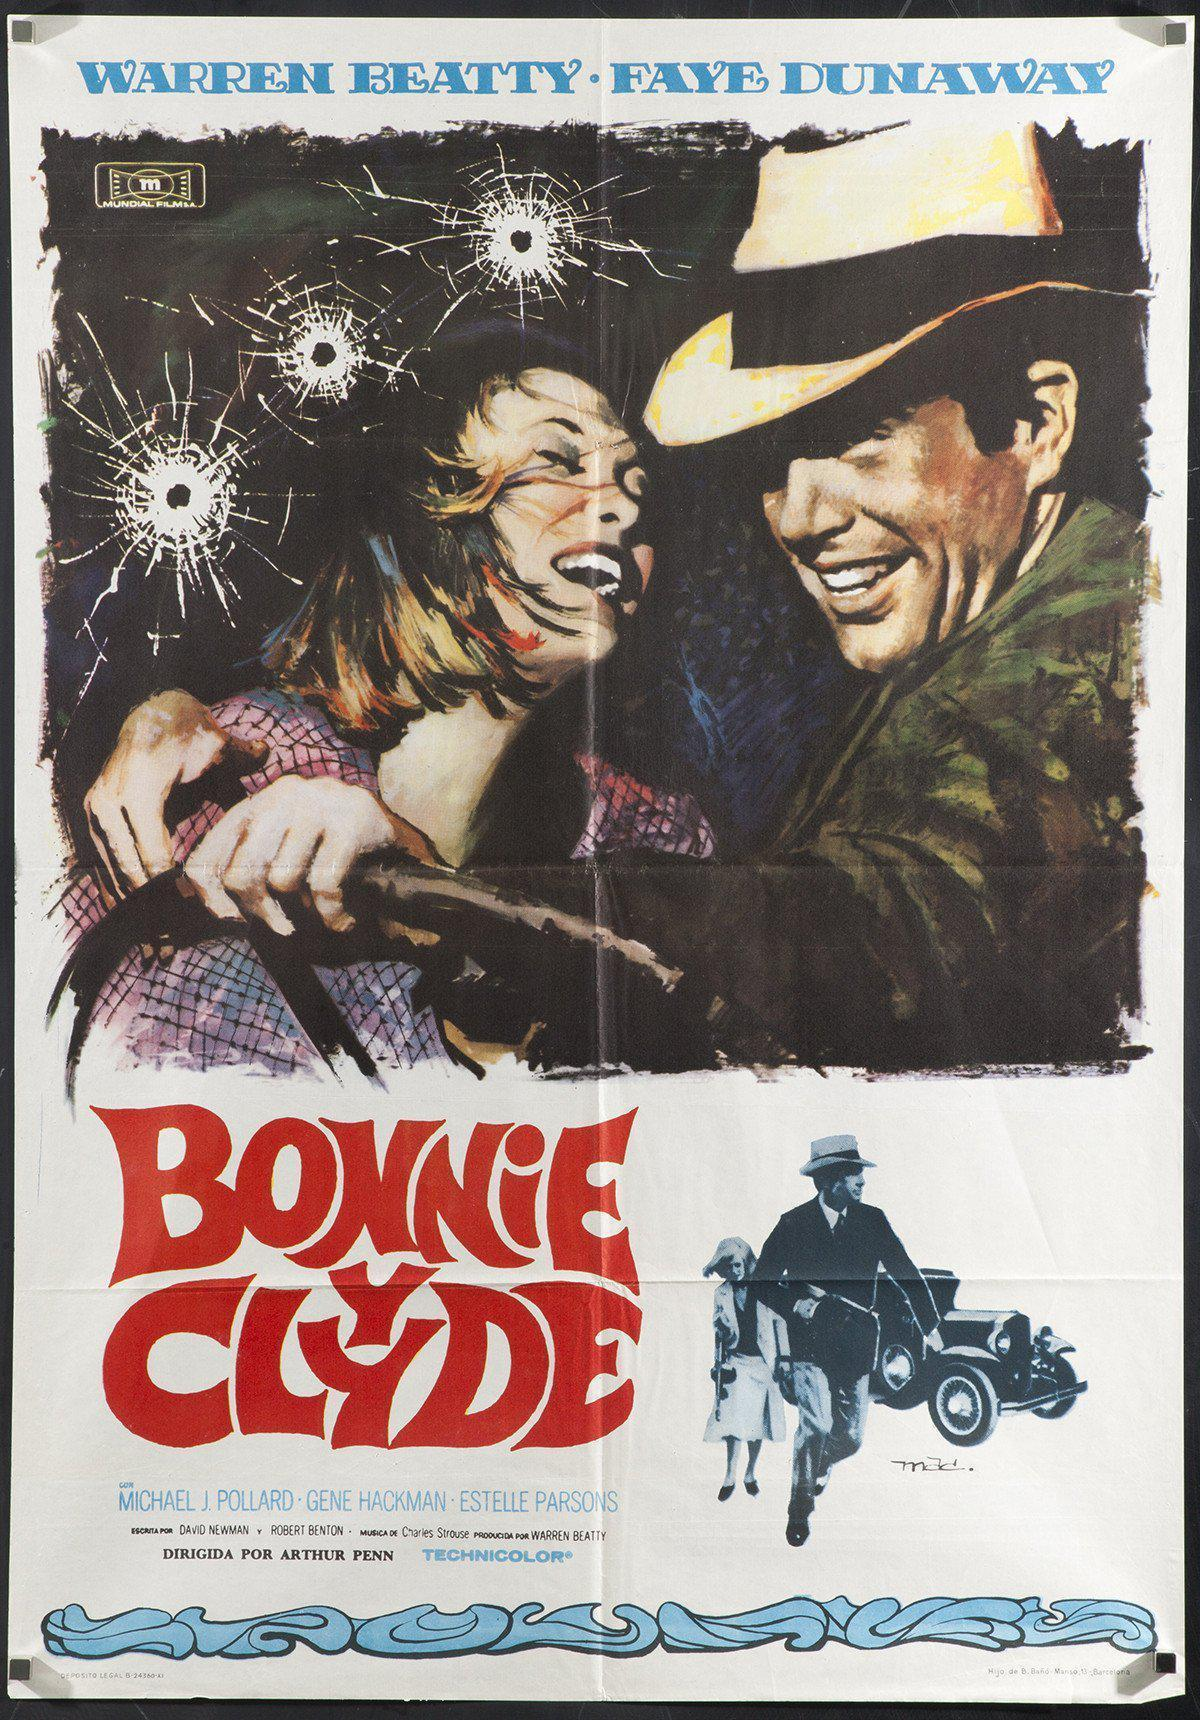 Bonnie and Clyde 1 Sheet (27x41) Original Vintage Movie Poster